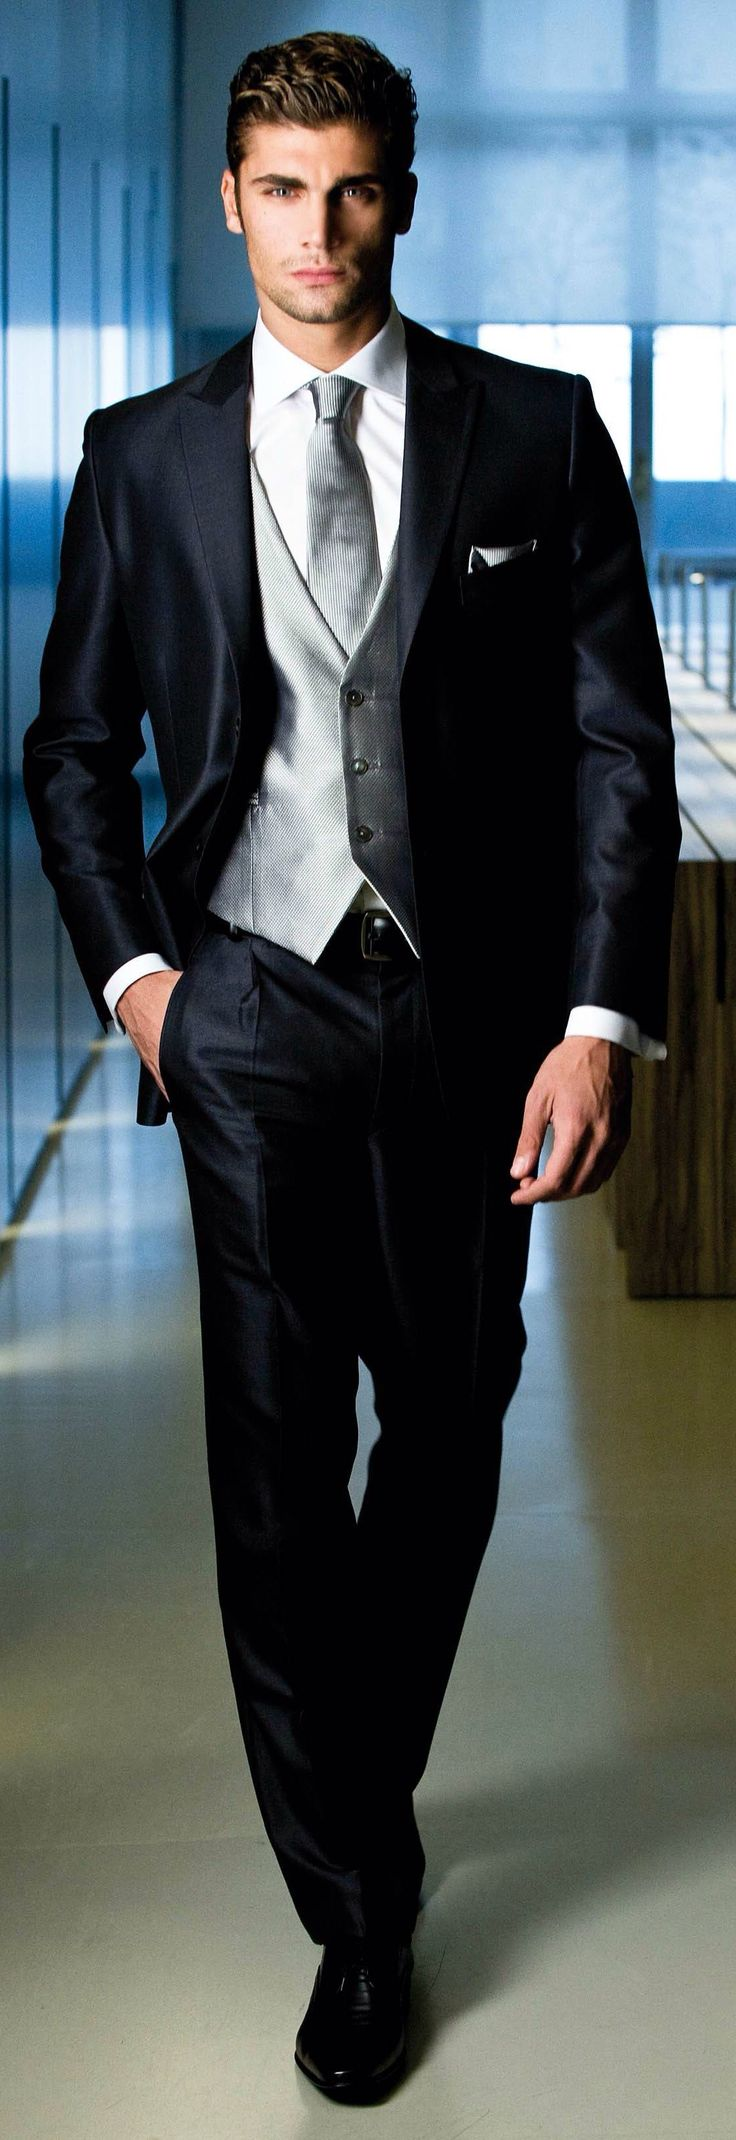 Well tailored three piece suit. #dapper #style